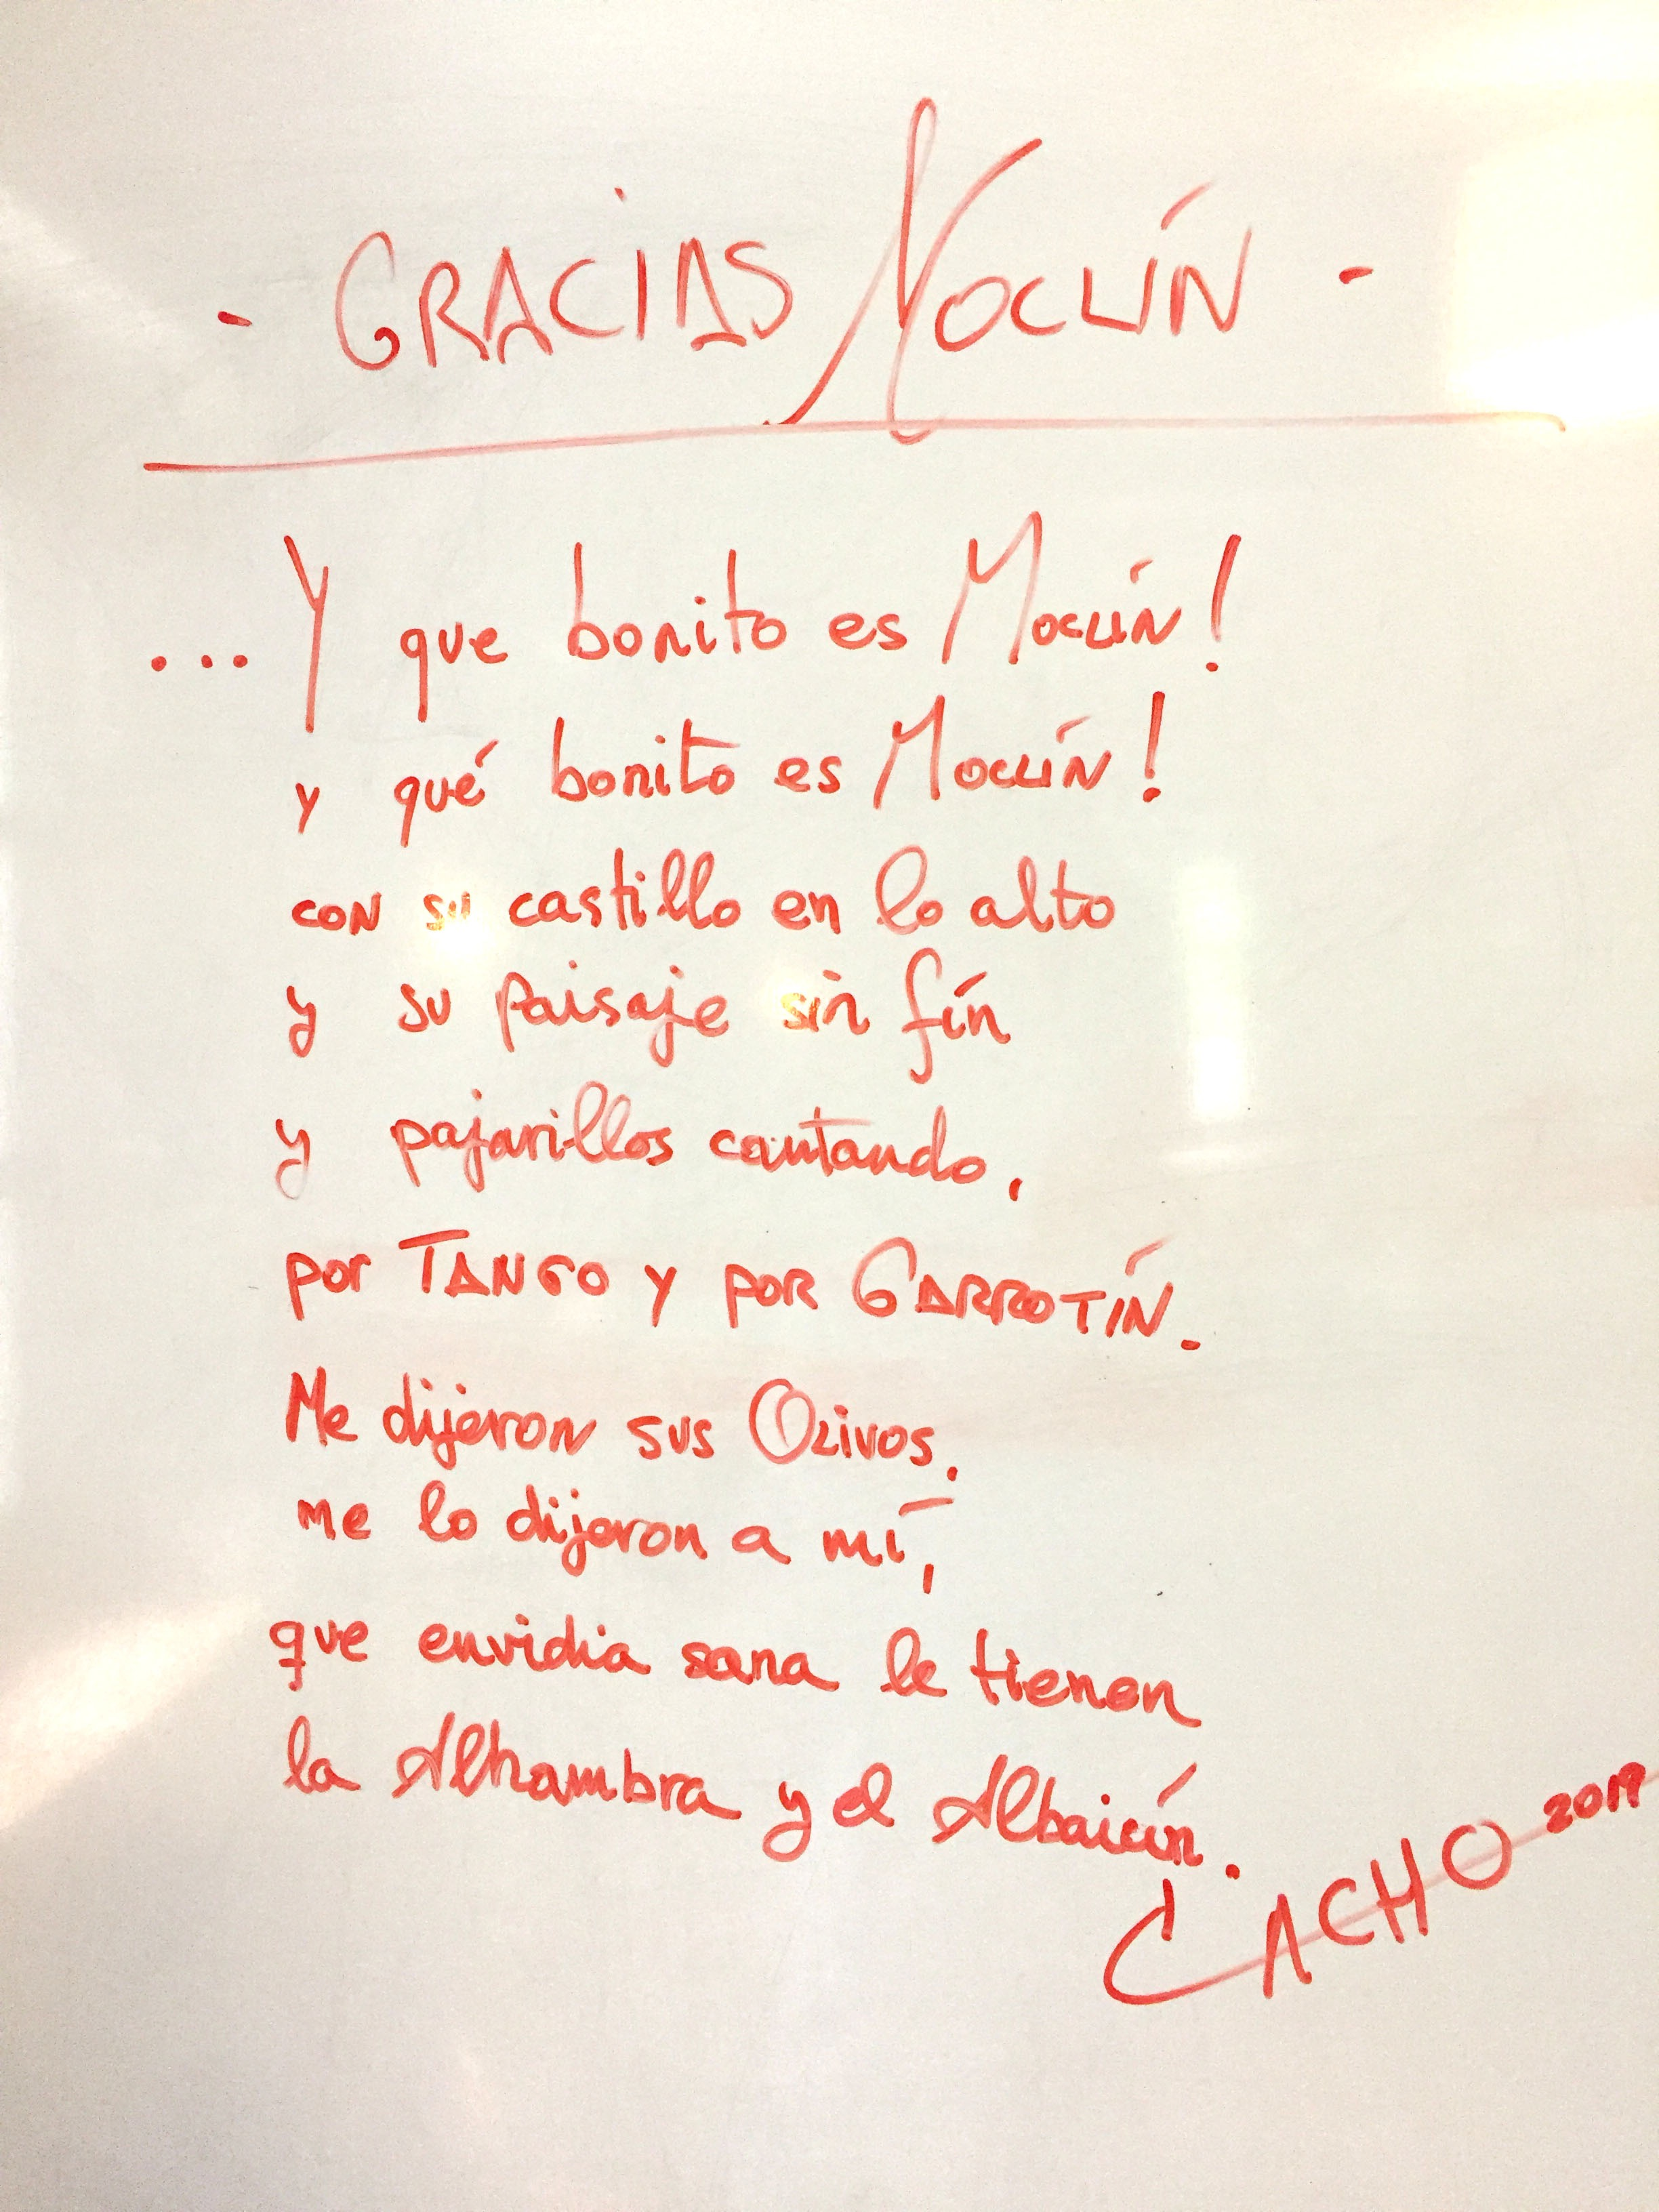 GC_flamenco Moclin Poem.JPG